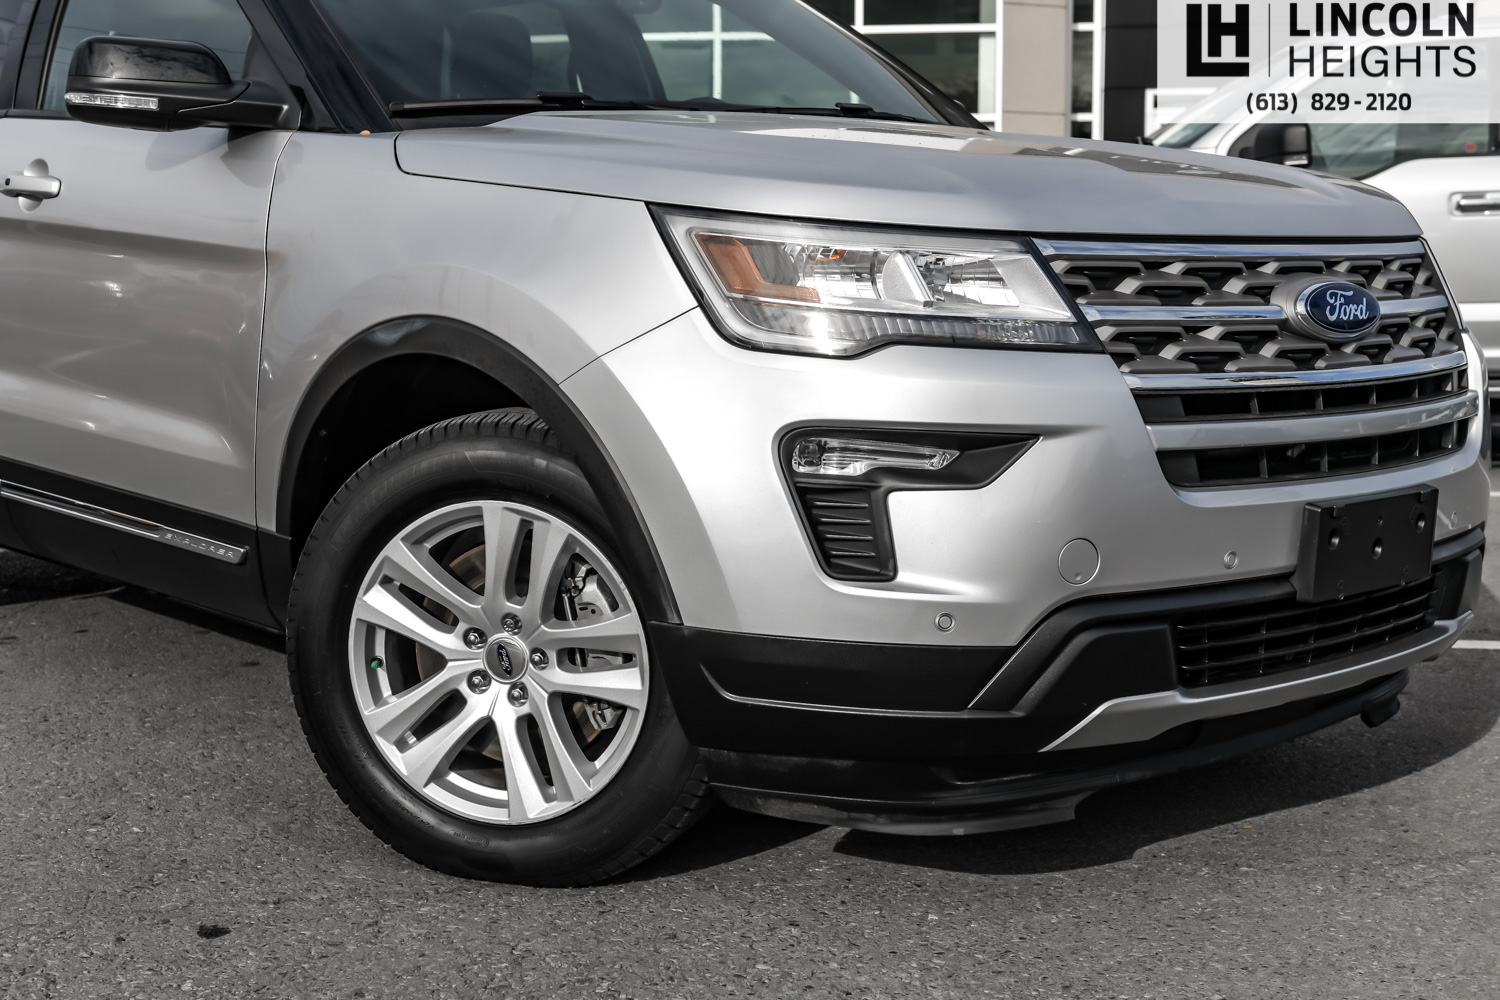 2018 Ford Explorer Xlt Heated Seats Remote Start Certified 9864 Starter